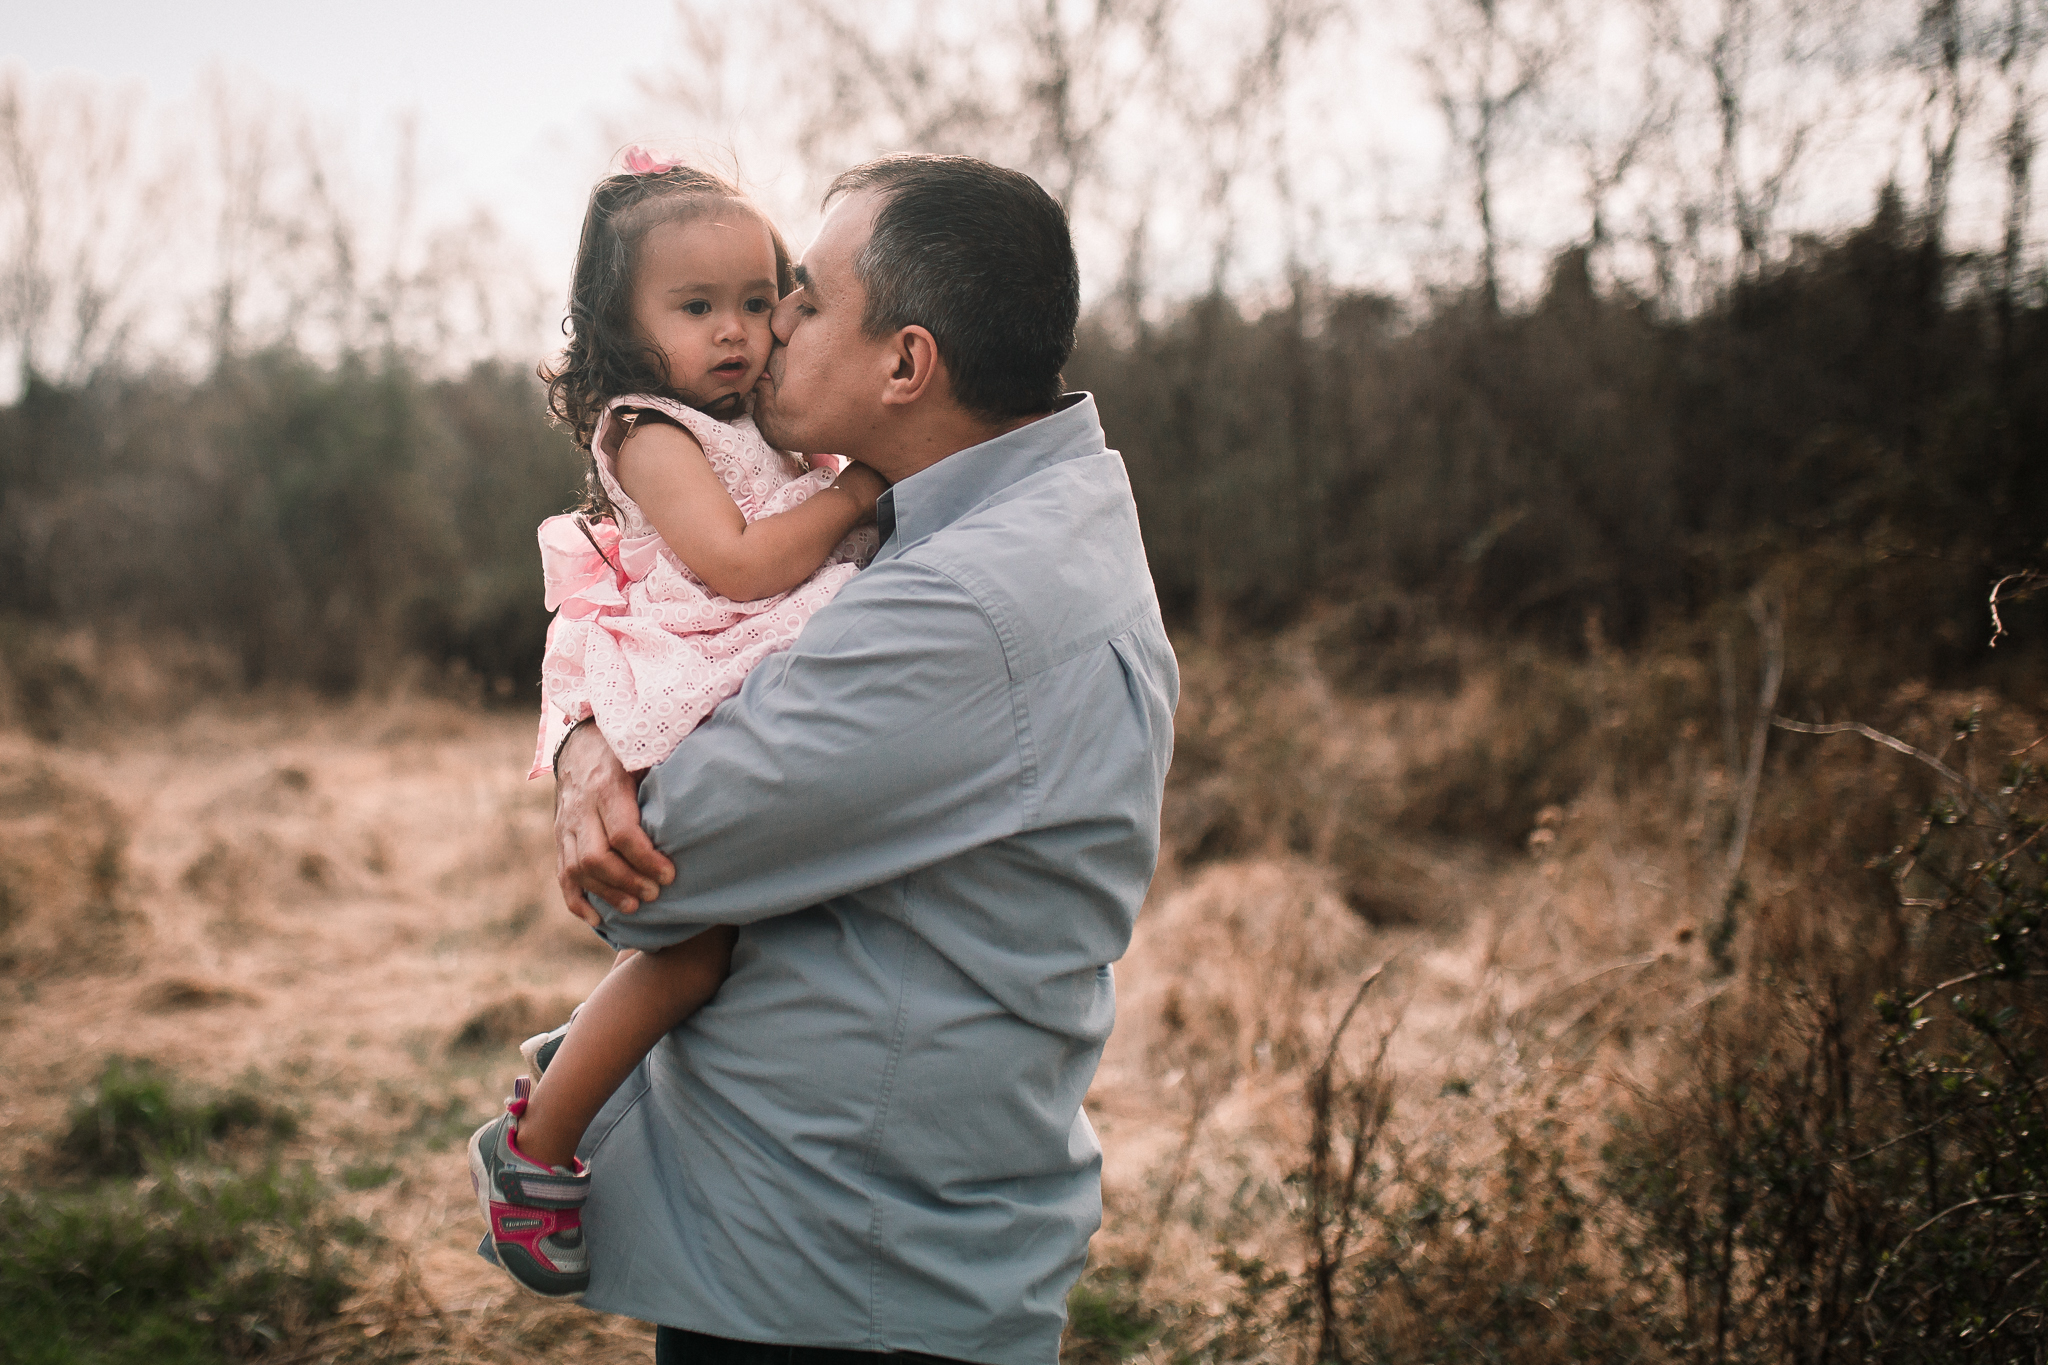 father daughter hug kiss maternity lifestyle documentary family Claude Moore Park Heritage Farm Museum Sterling Loudoun Virginia Marti Austin Photography